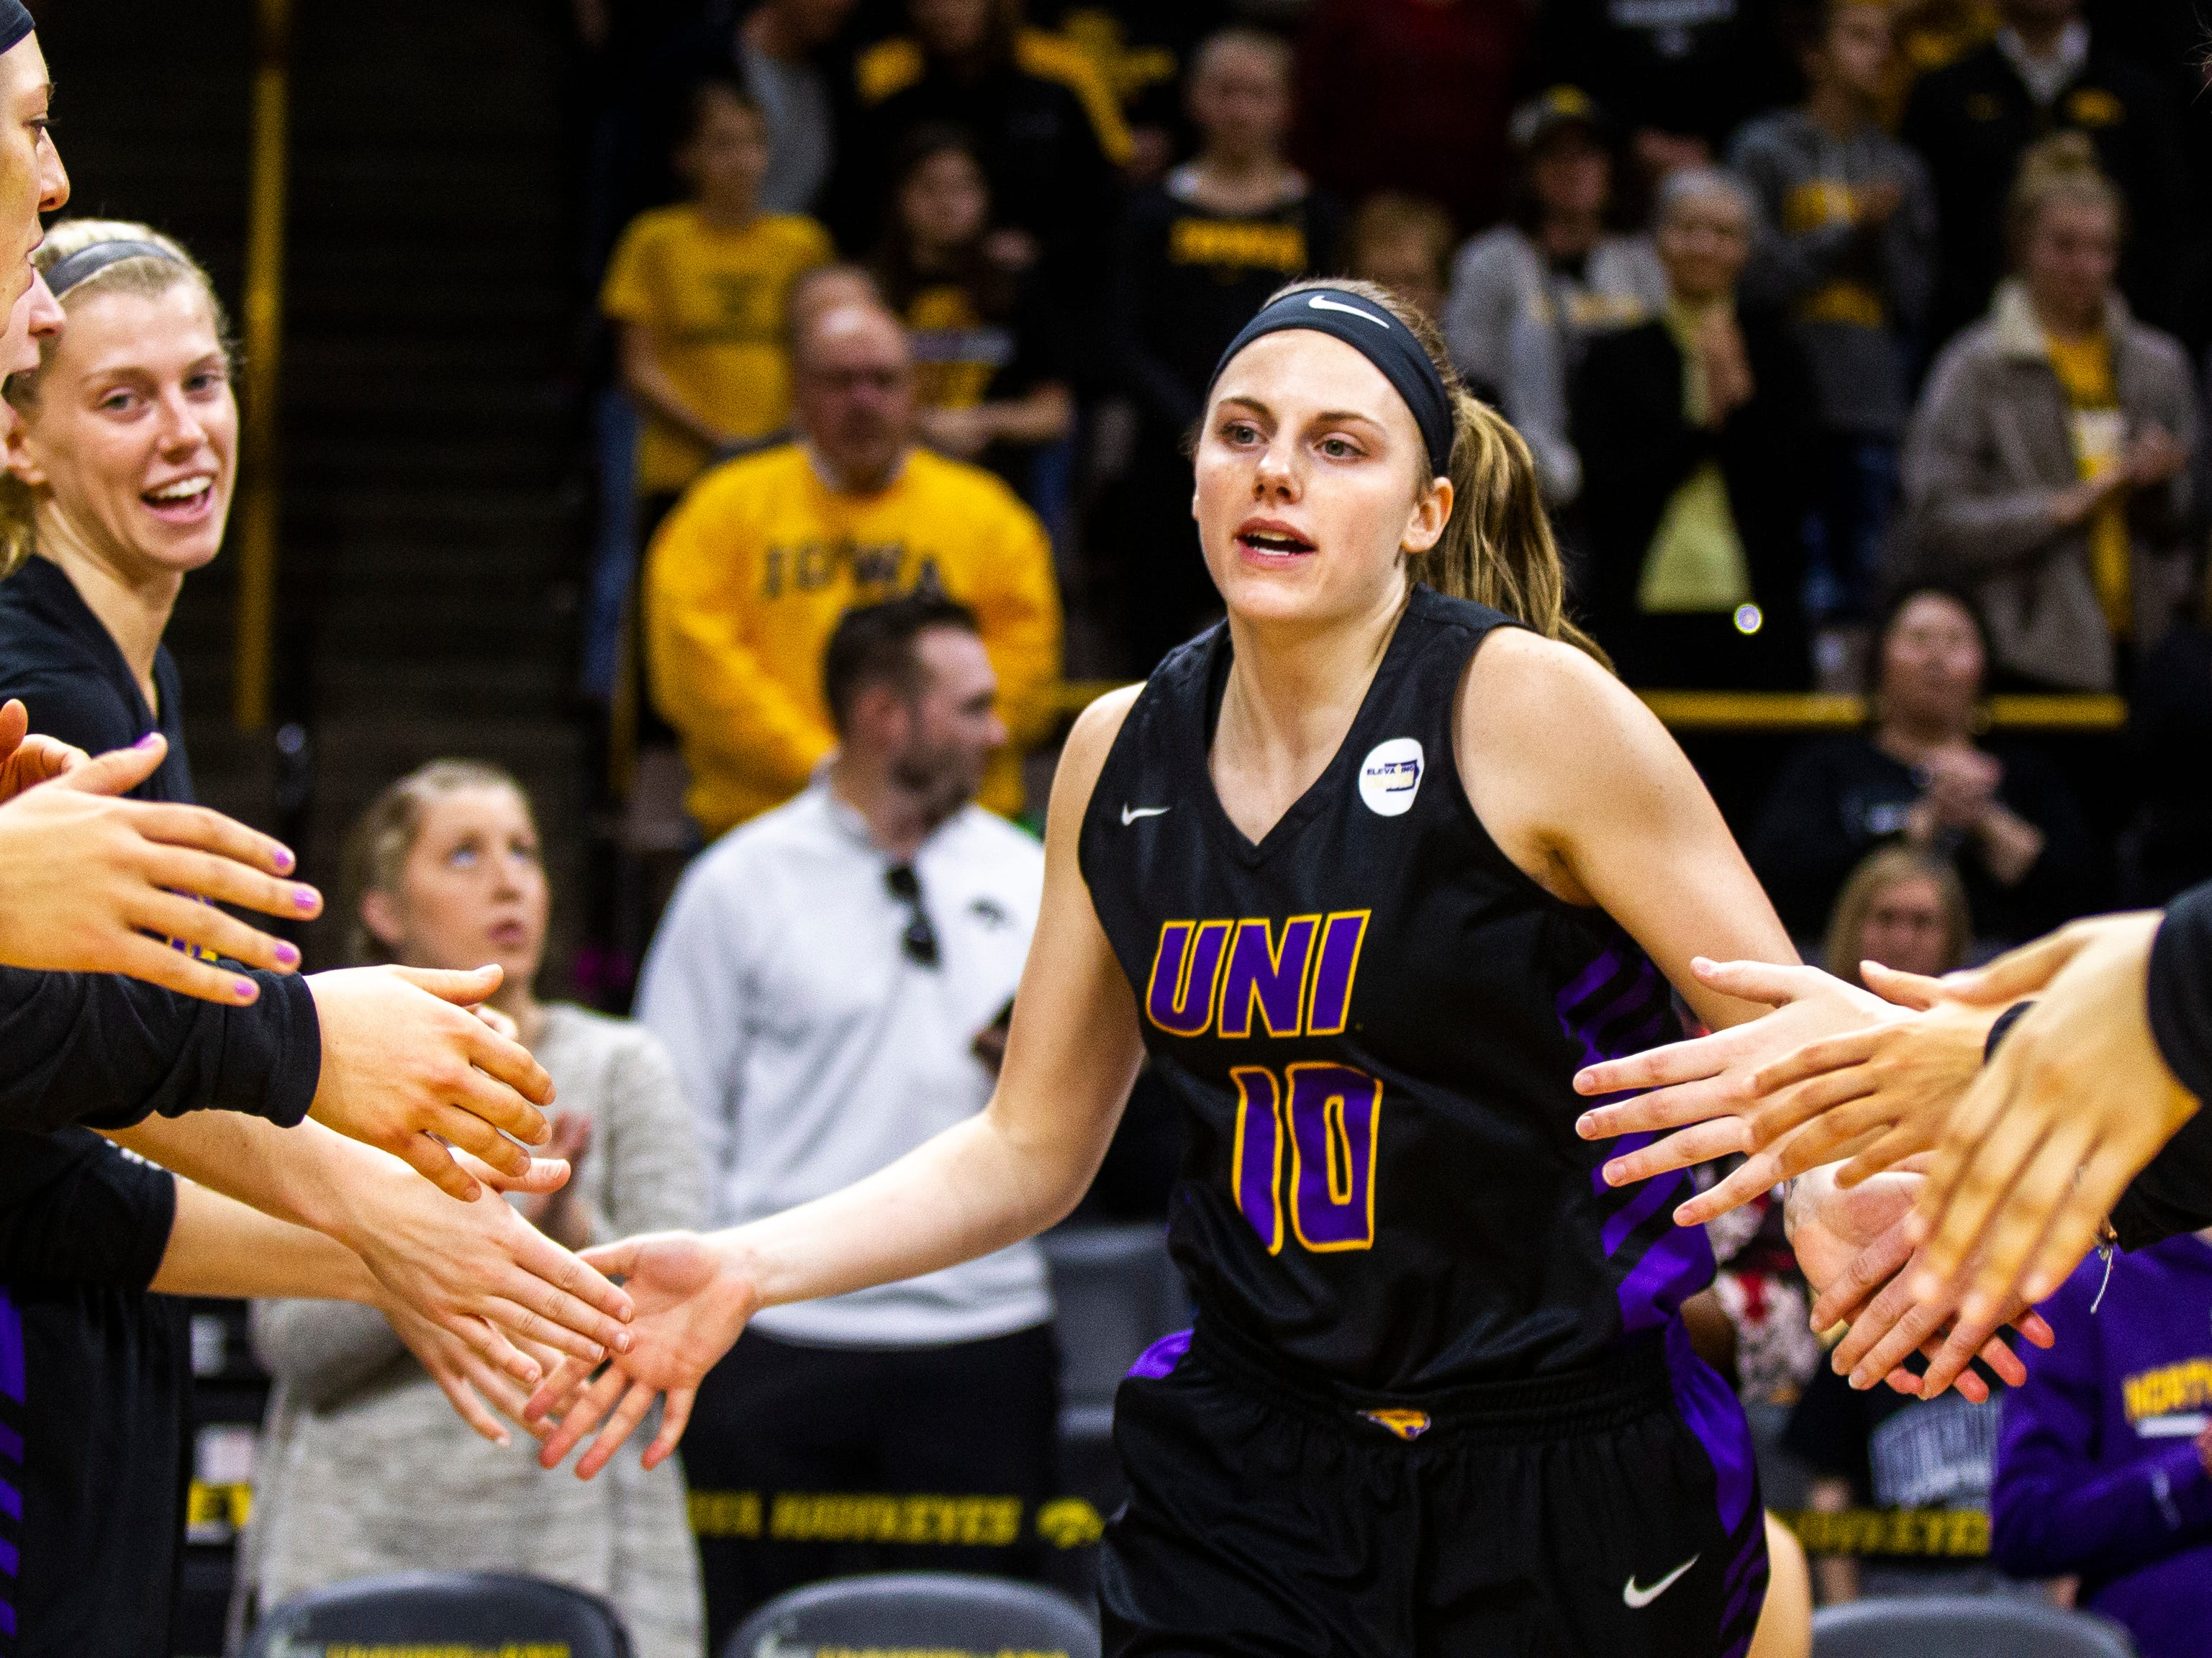 Northern Iowa guard Ellie Howell (10) is introduced during a NCAA women's basketball game on Sunday, Dec. 16, 2018, at Carver-Hawkeye Arena in Iowa City.